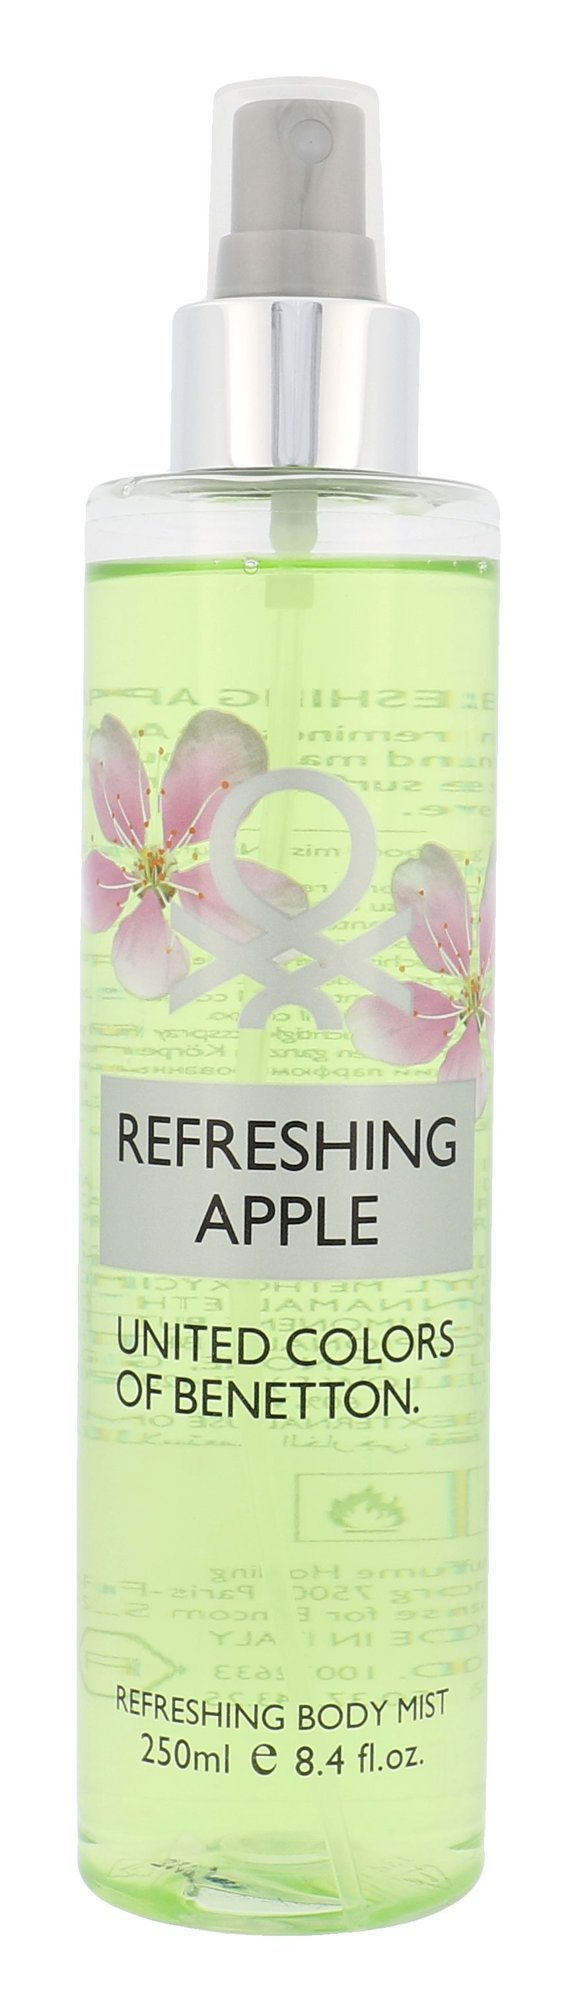 Benetton Refreshing Apple Body veil 250ml